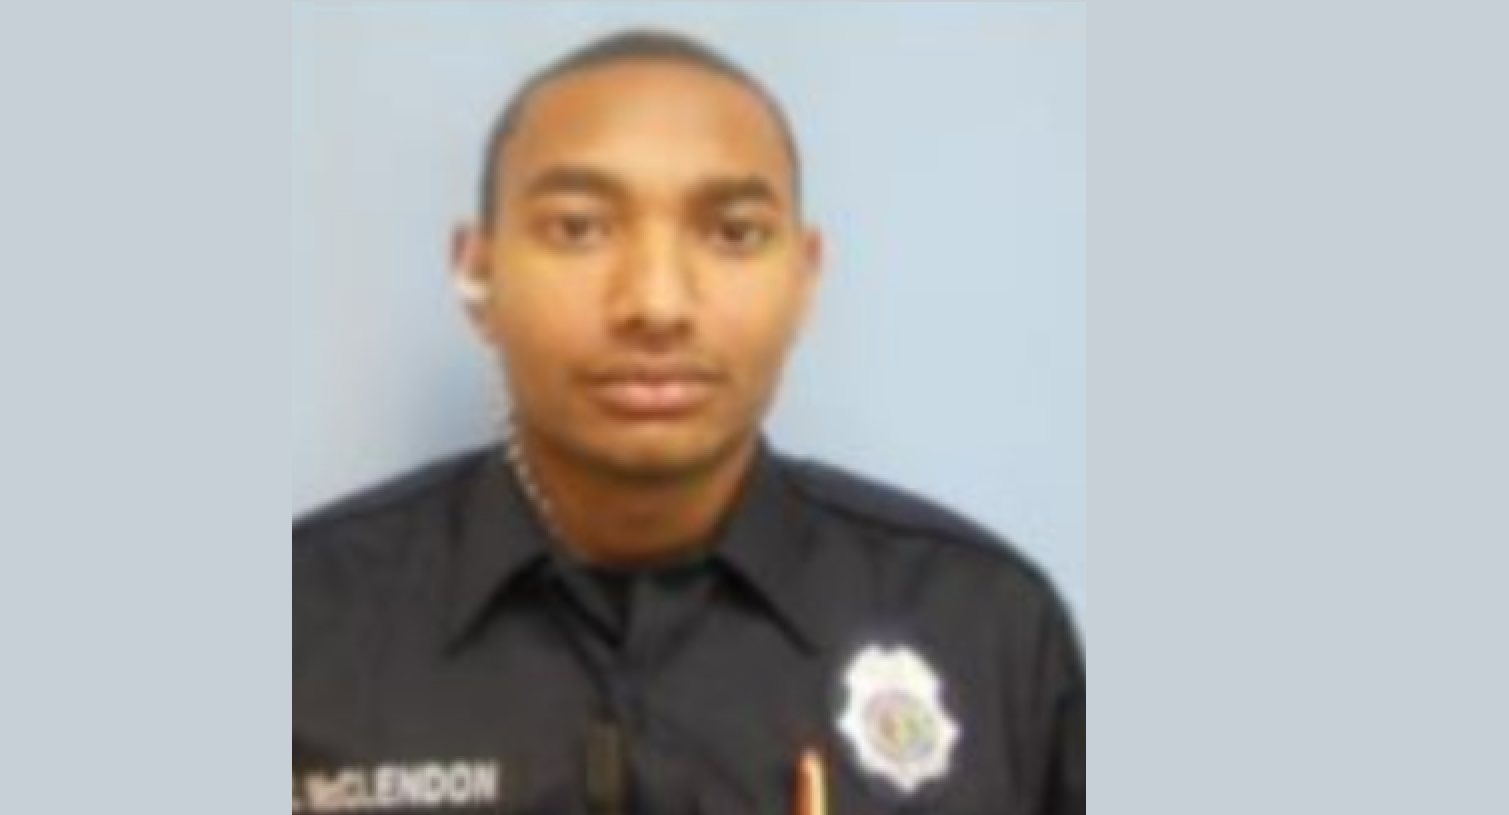 Man arrested in connection to officer-involved shooting, car break-in in Birmingham